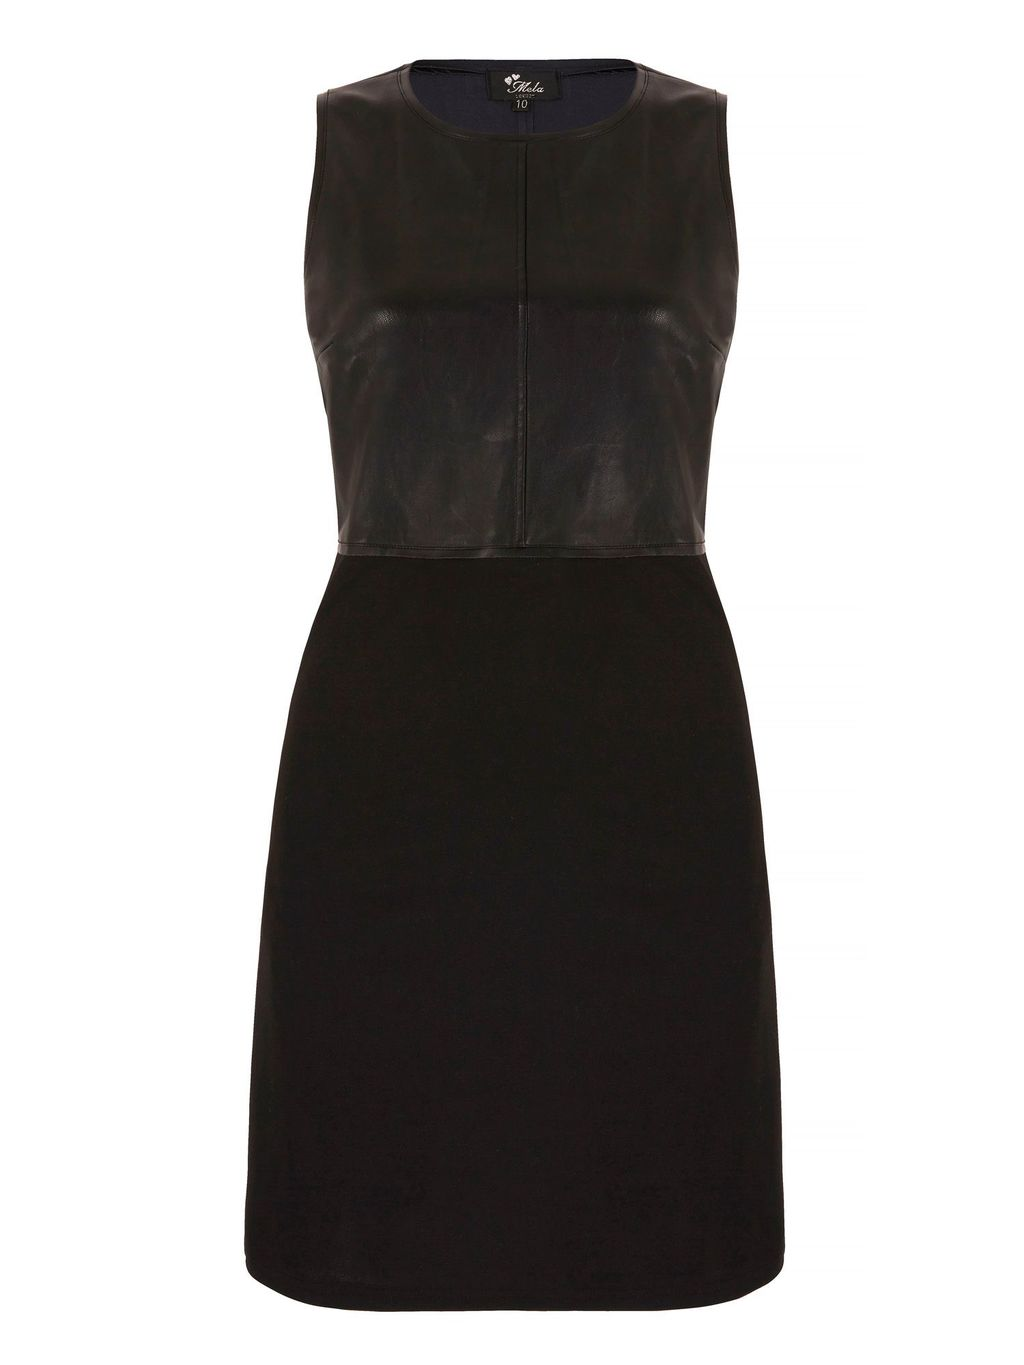 Leather Look Fitted Dress, Black - style: shift; fit: tailored/fitted; pattern: plain; sleeve style: sleeveless; predominant colour: black; occasions: evening; length: just above the knee; fibres: polyester/polyamide - 100%; neckline: crew; sleeve length: sleeveless; pattern type: fabric; texture group: woven light midweight; season: a/w 2015; wardrobe: event